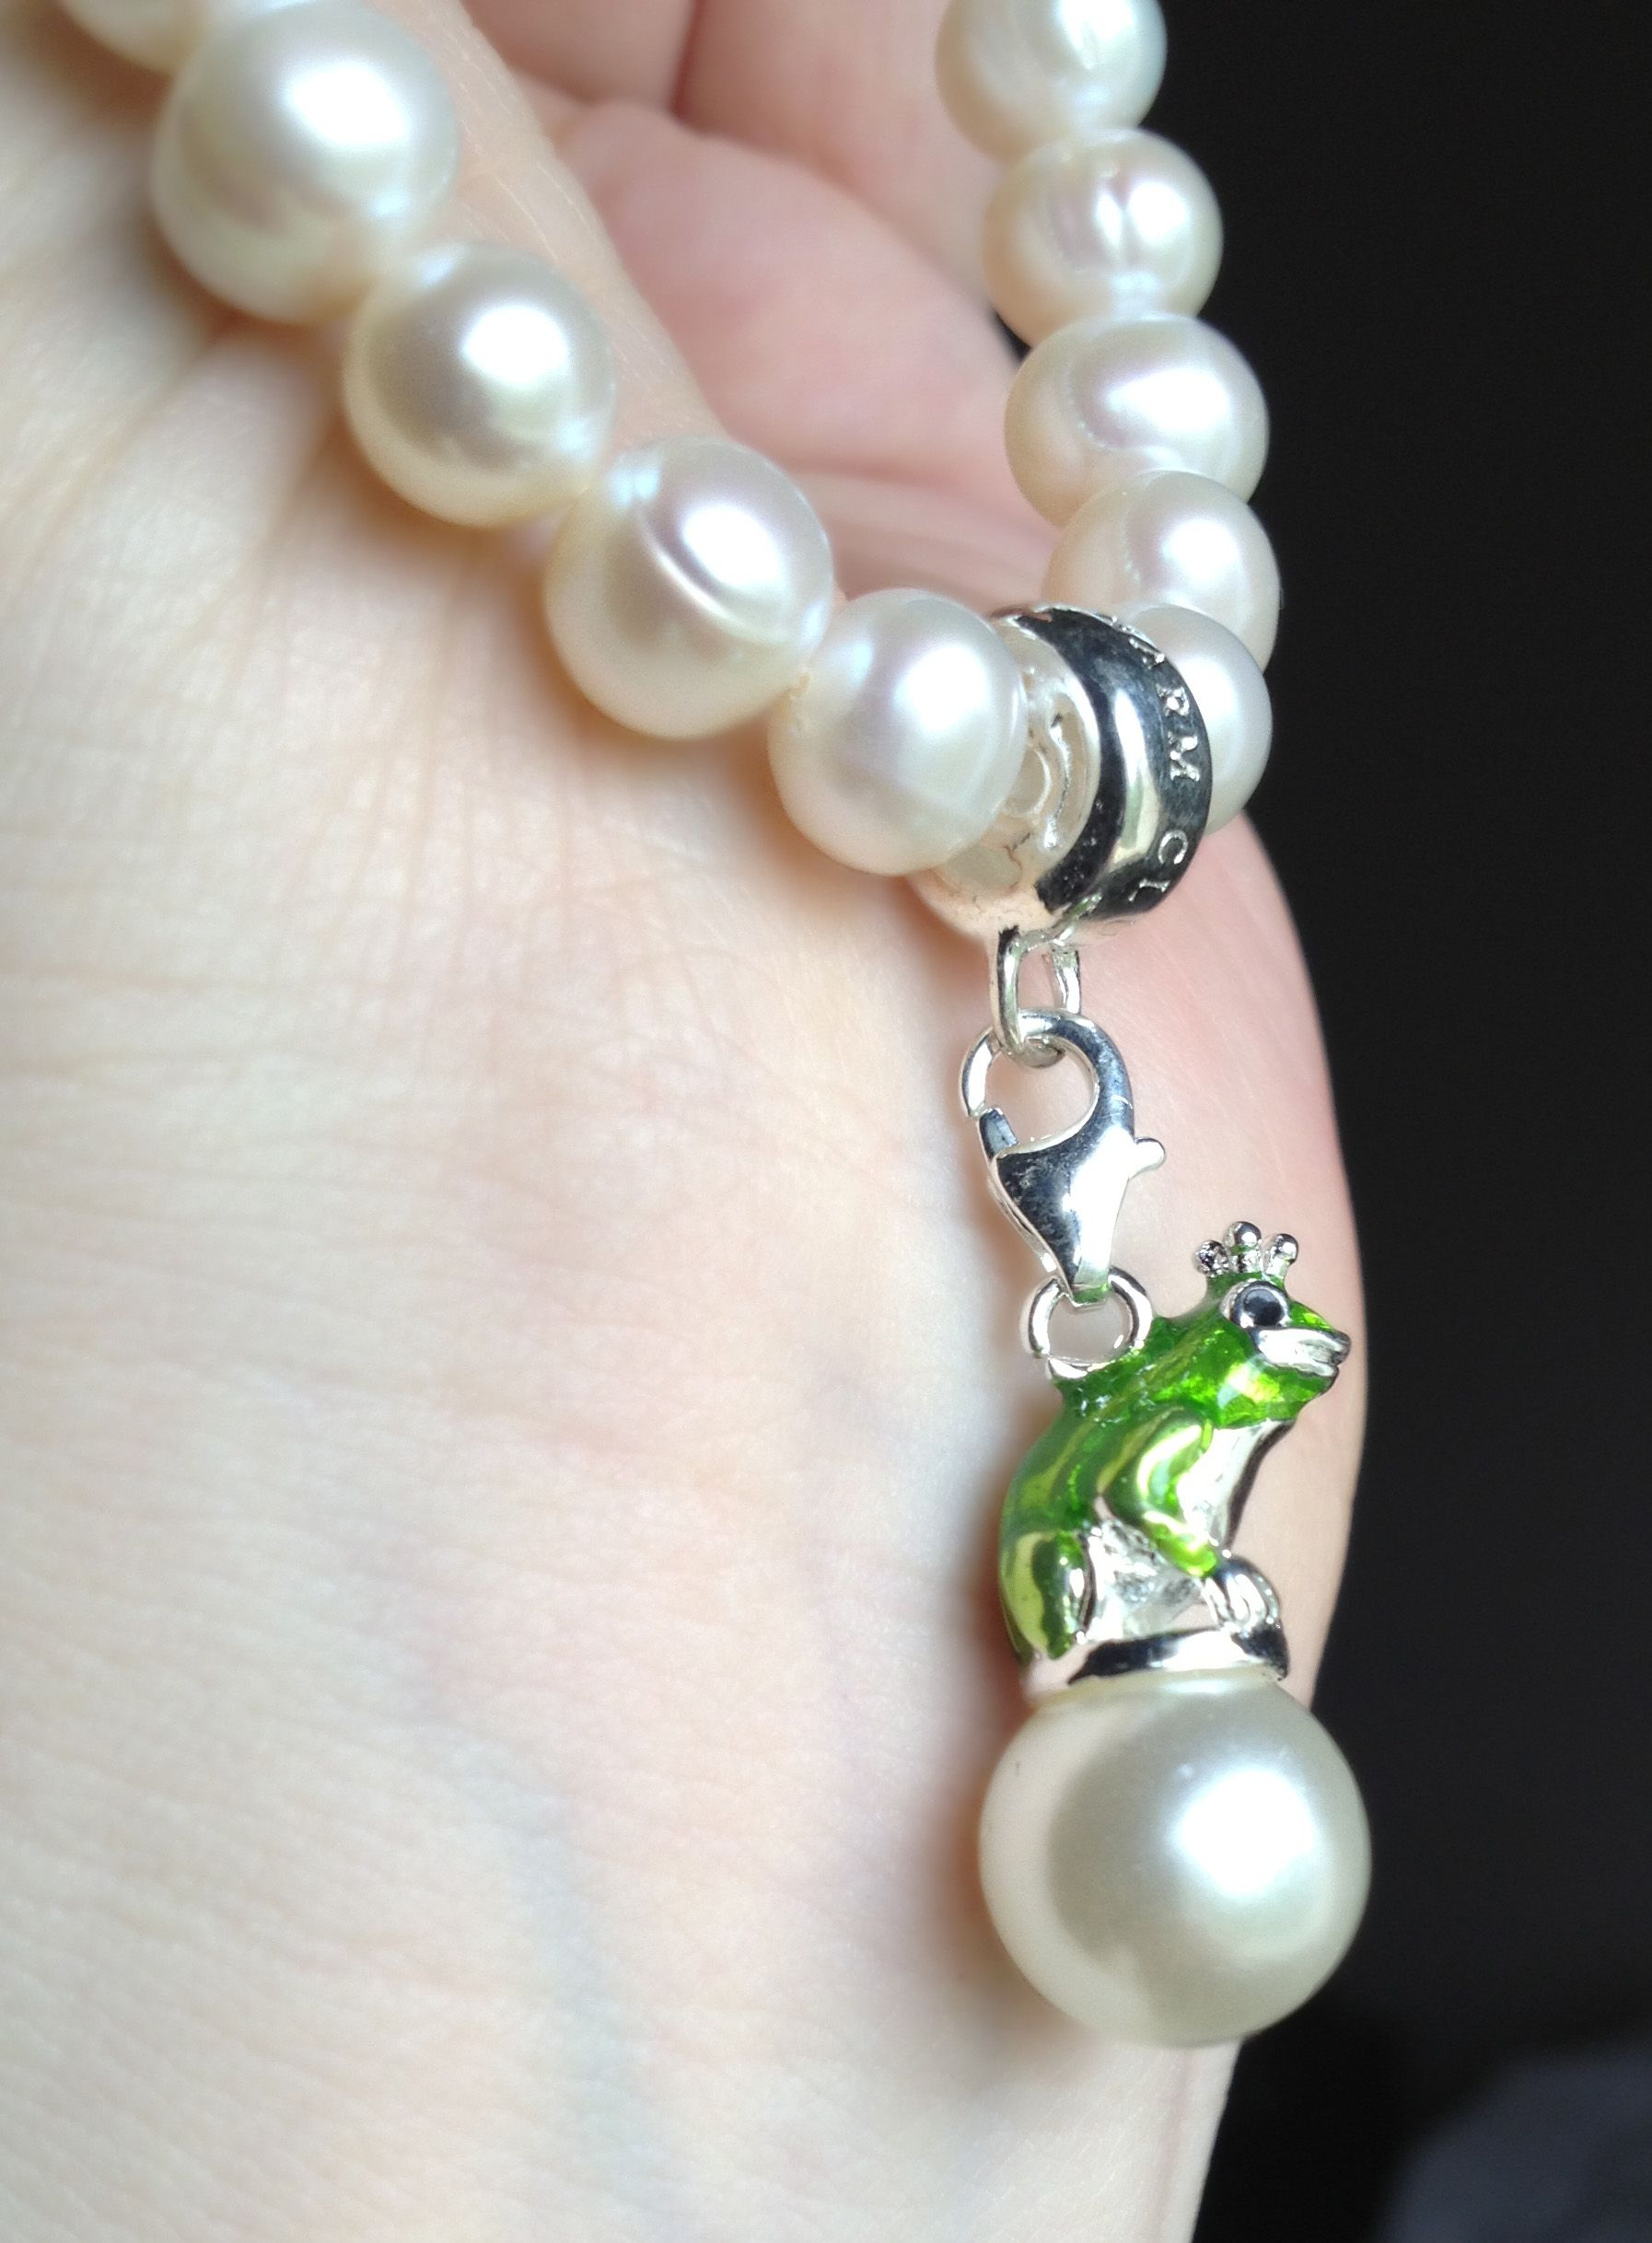 Frog Prince Charm With Freshwater Pearl On Pearl Bracelet Thomas Sabo Charms Pearl Bracelet Thomas Sabo